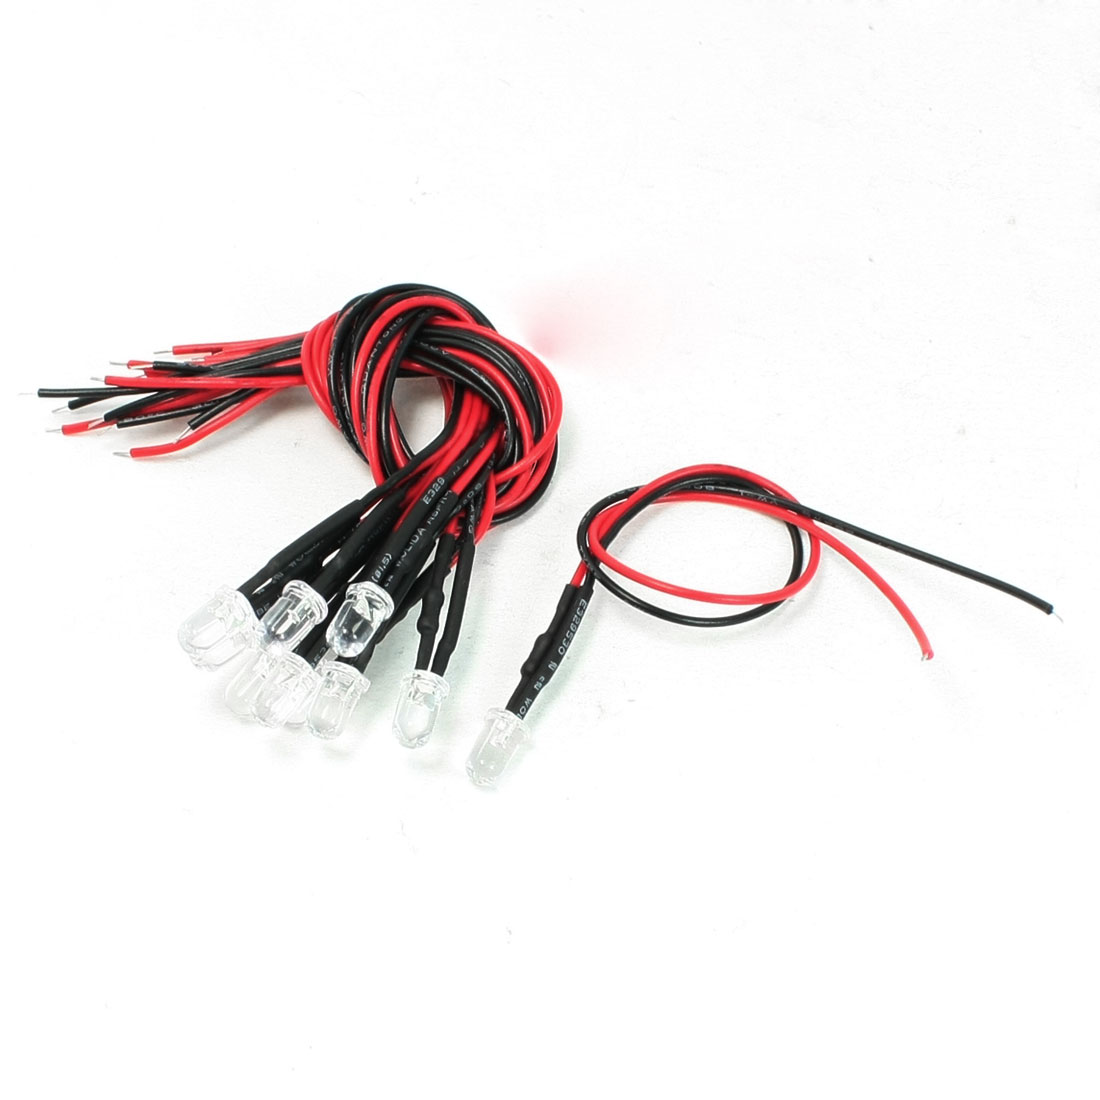 10 Pcs 0.1W 12V DC 2 Wires 5mm Dia Bulbs Red Light LED Lamp for Car Vehicle